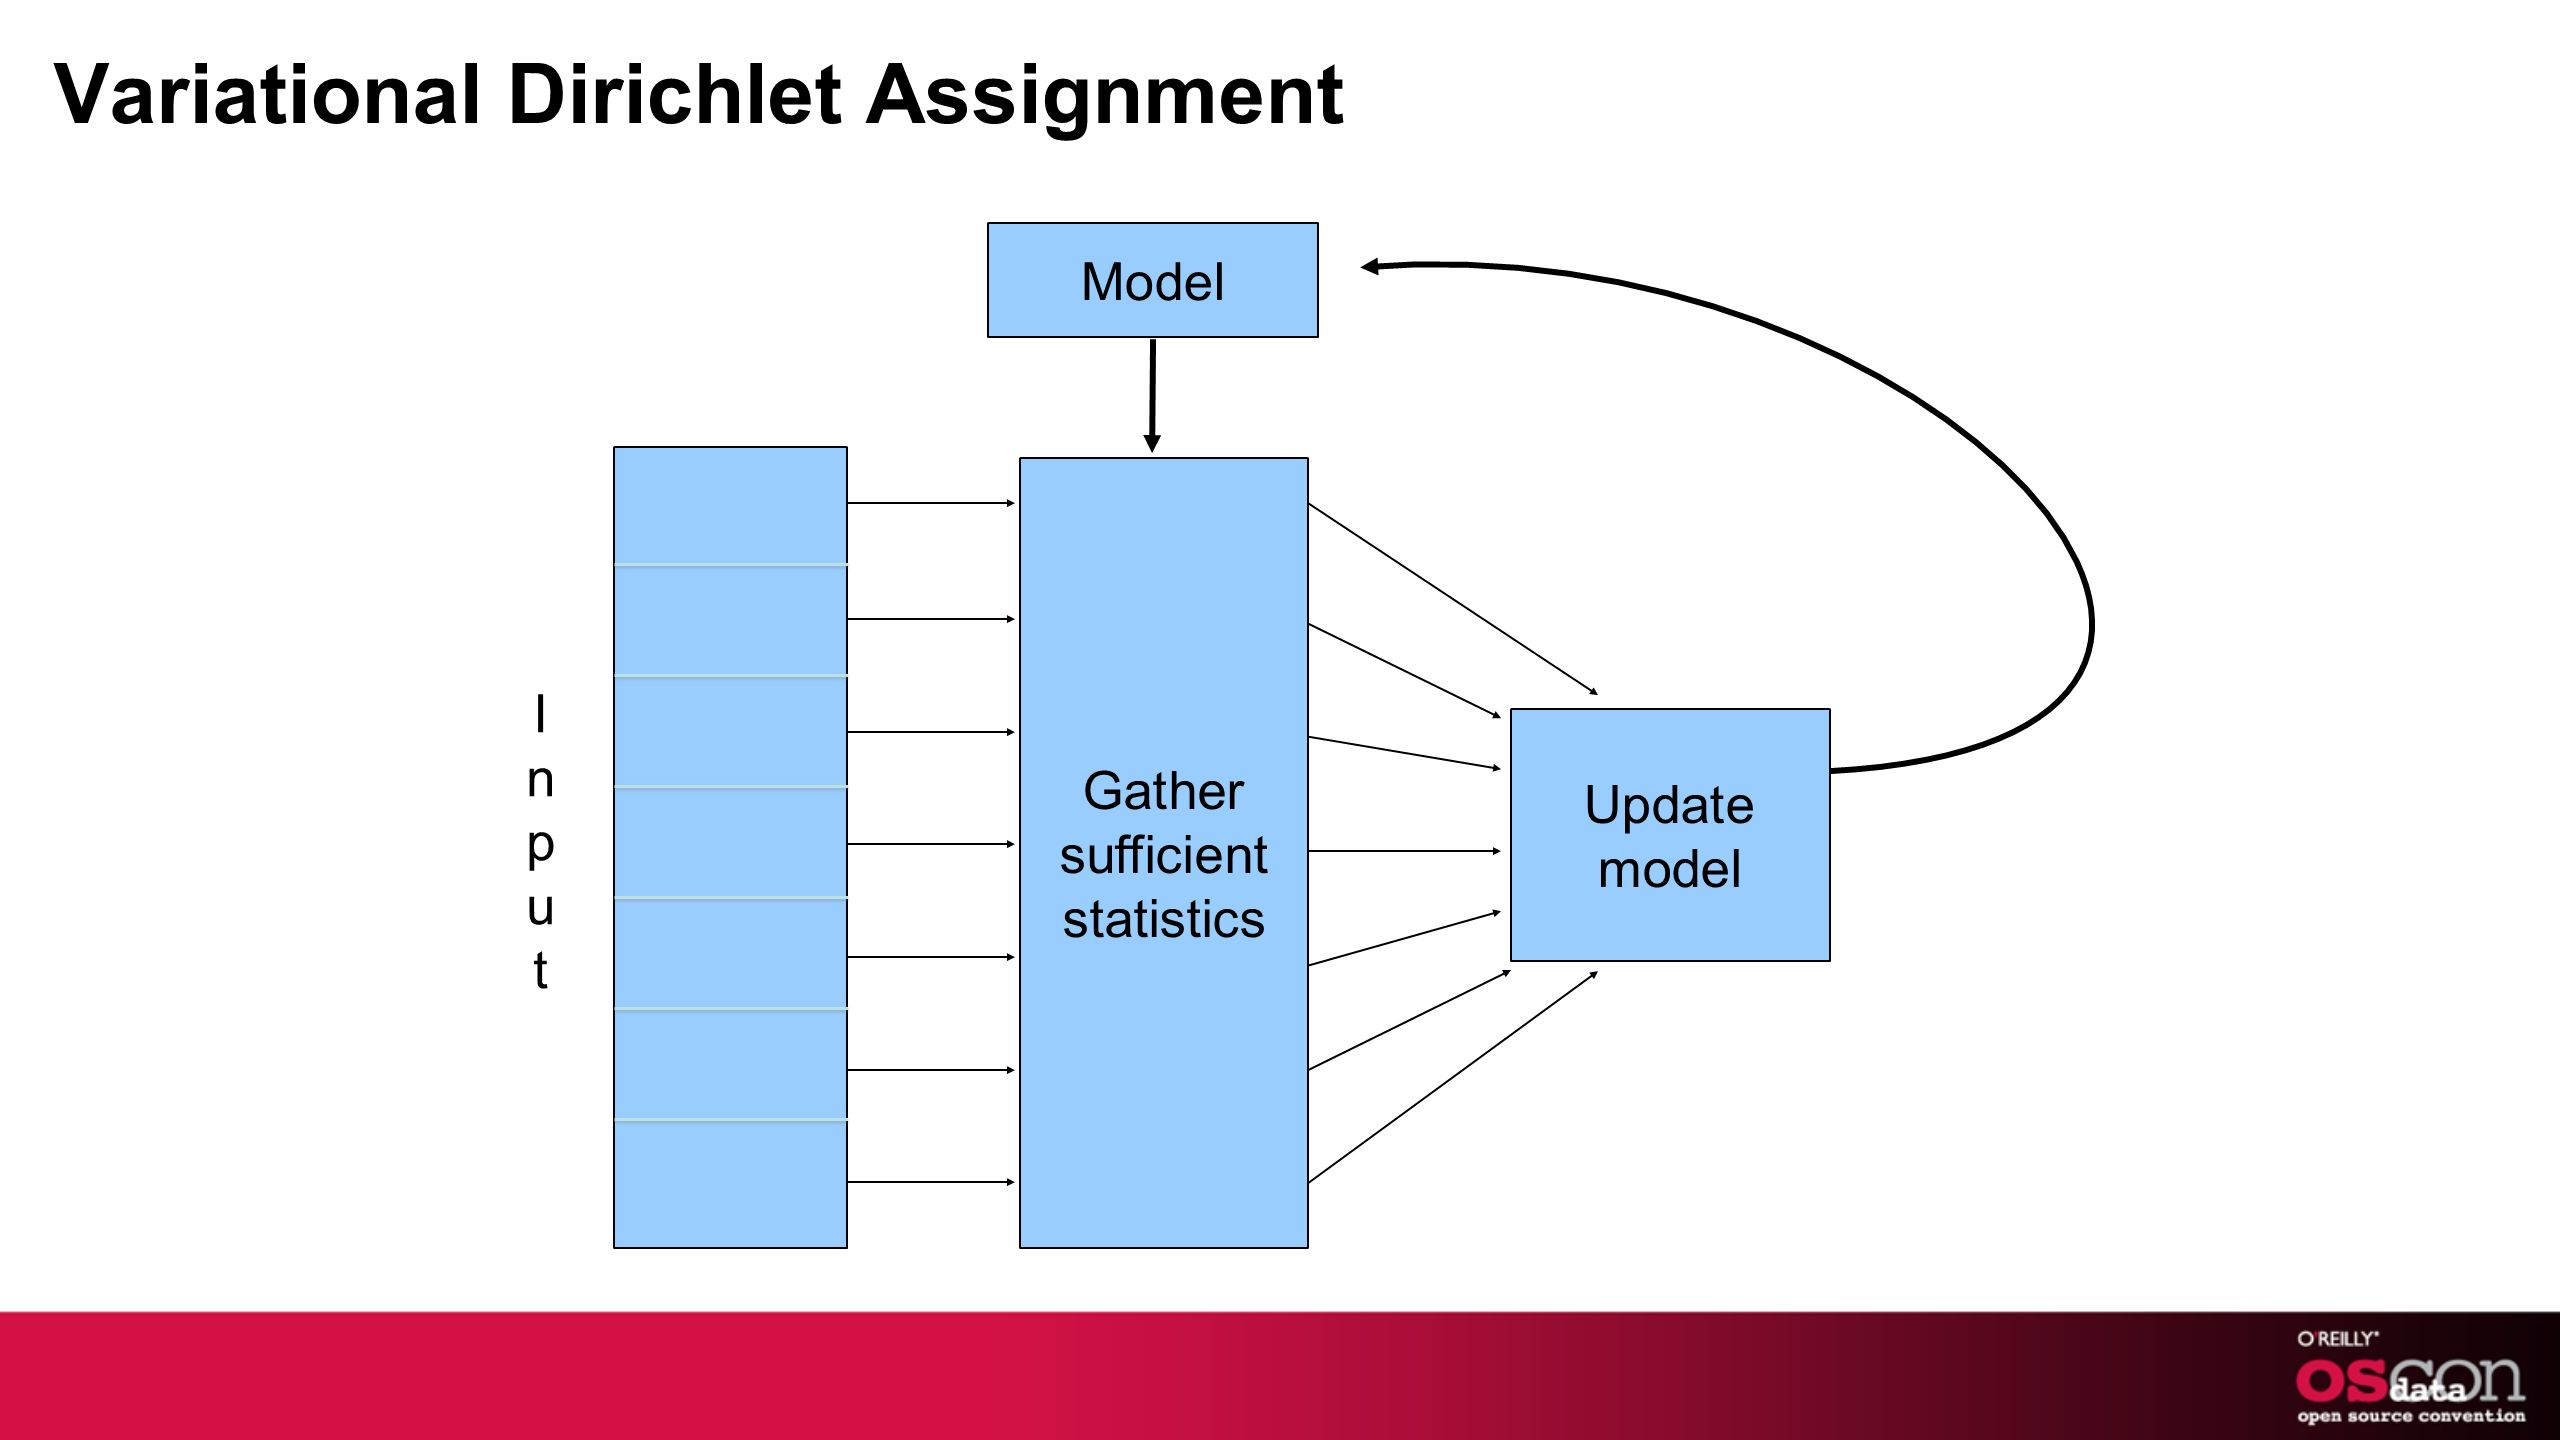 Variational Dirichlet Assignment Update model Gather sufficient statistics Model InputInput